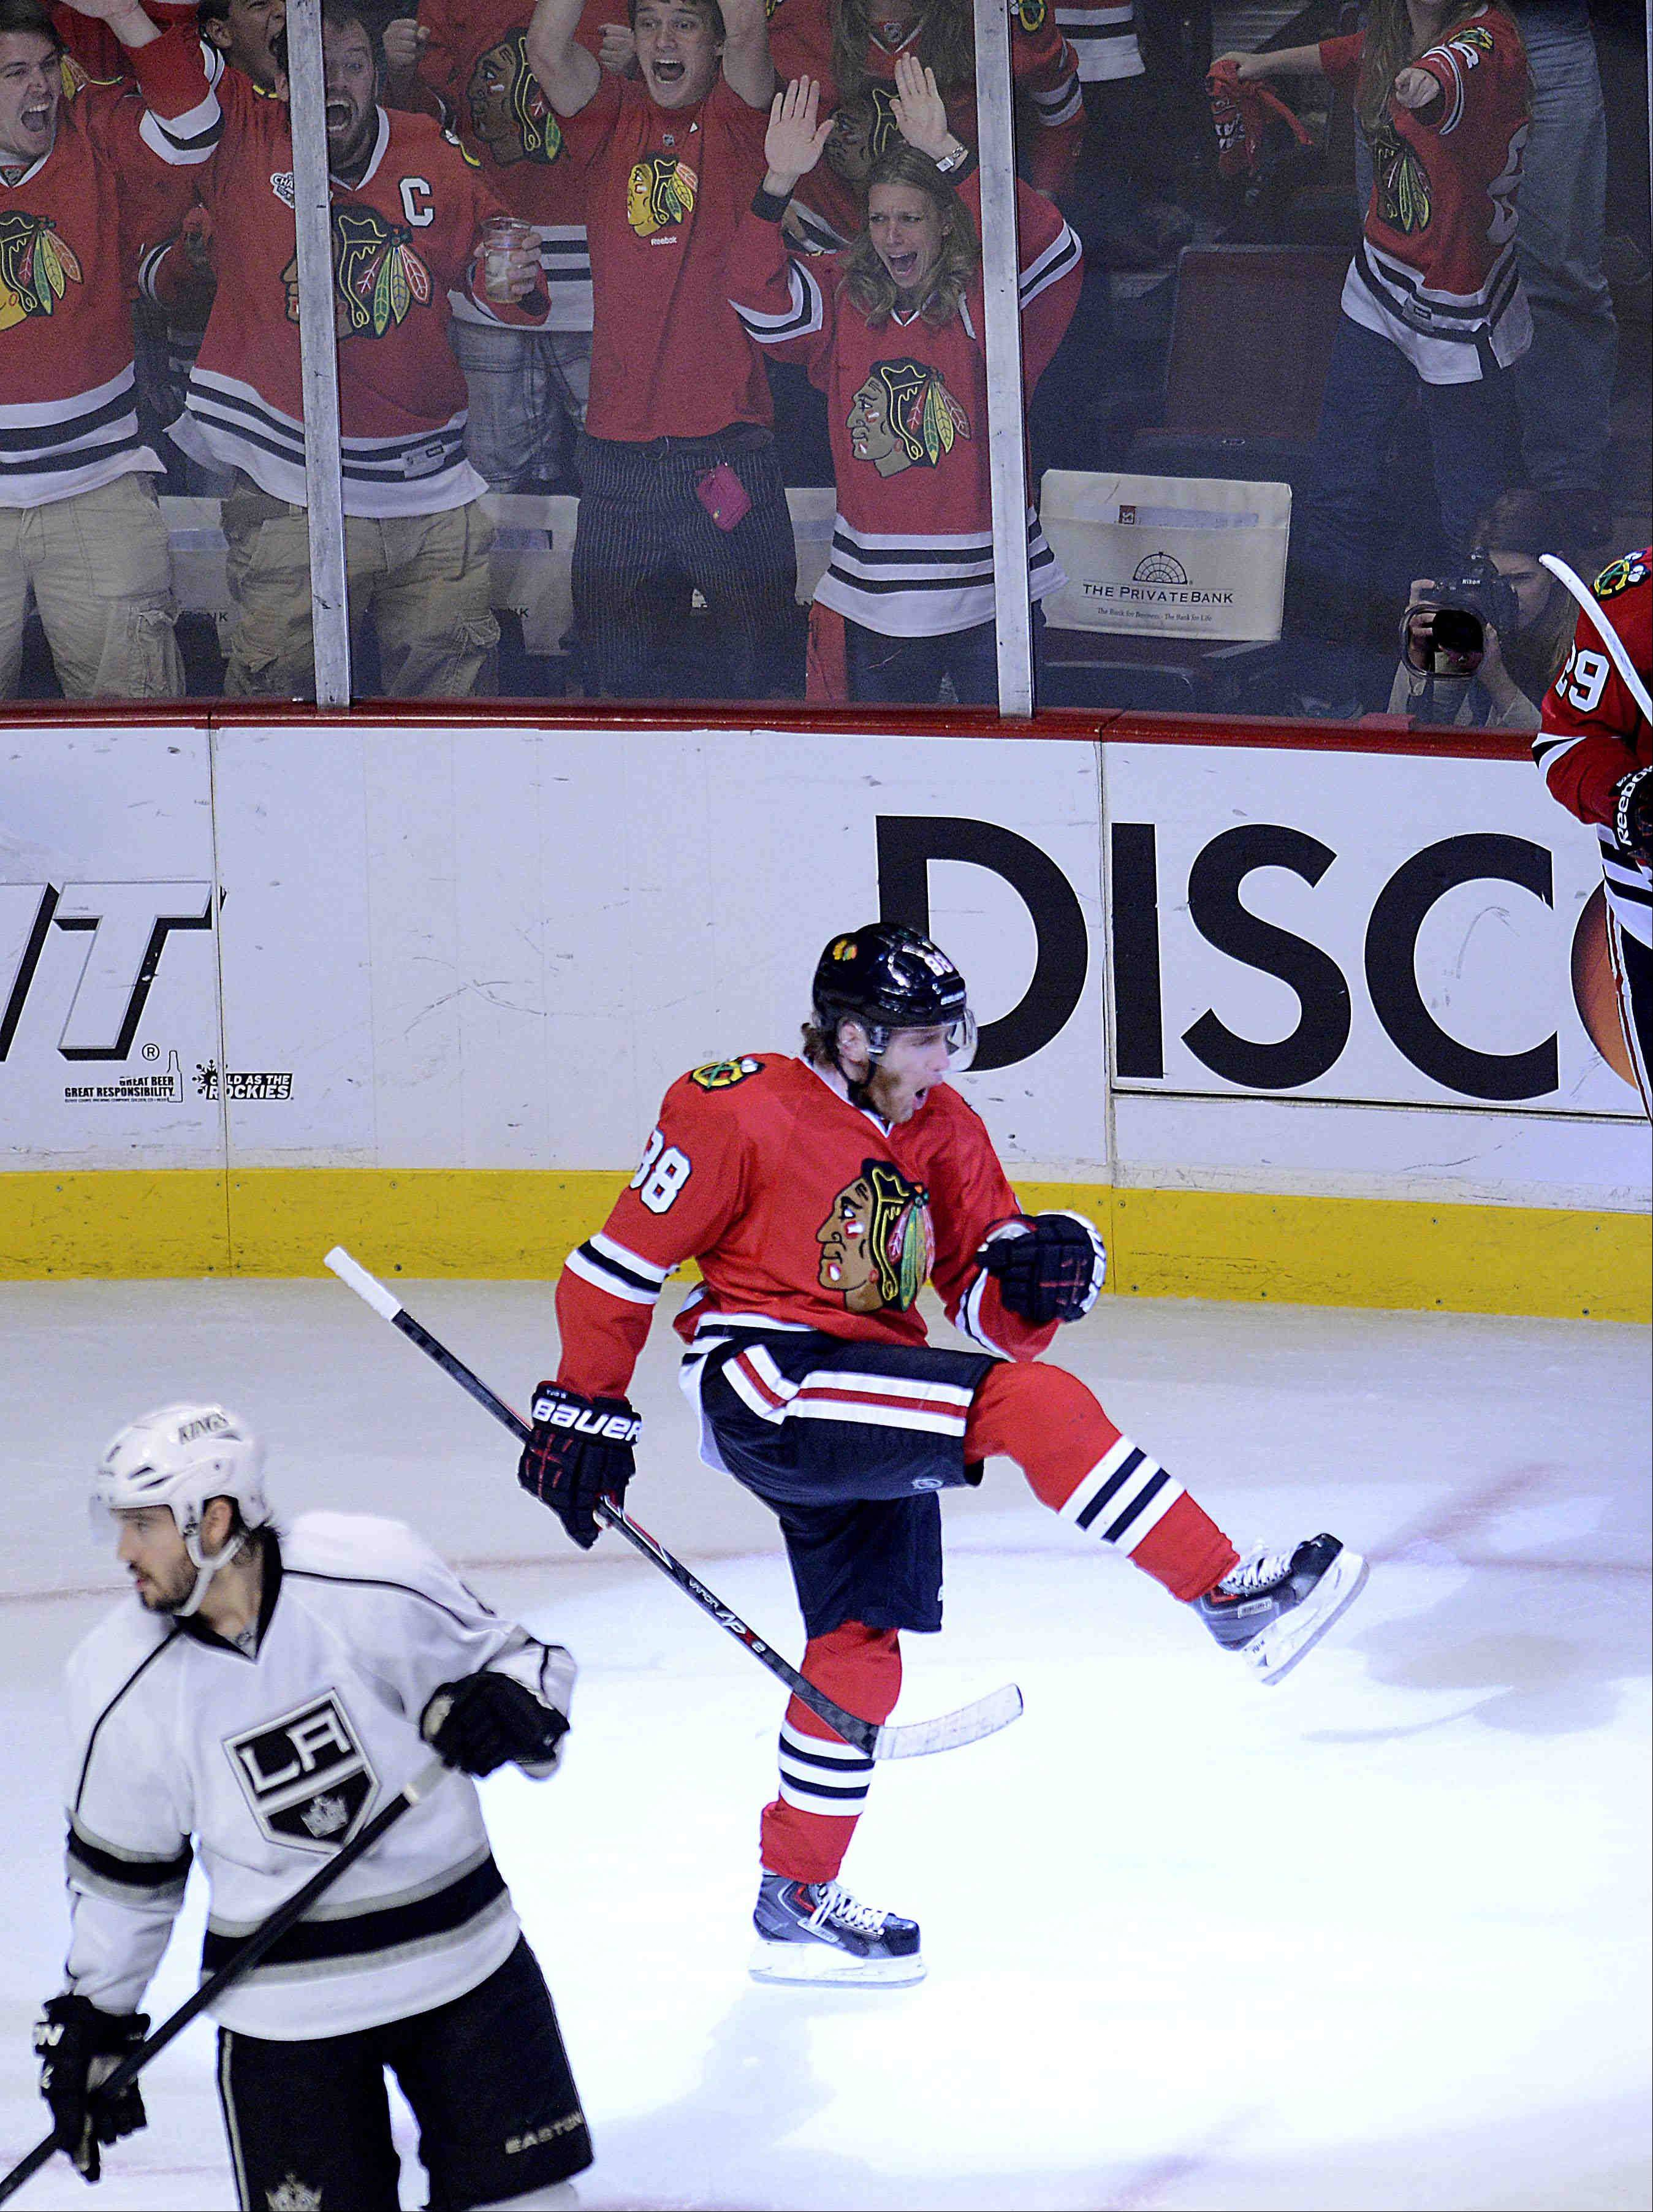 Chicago Blackhawks right wing Patrick Kane reacts after his goal with less than four minutes left in regulation against the Los Angeles Kings Saturday during the NHL Western Conference Finals Game 5 at the United Center in Chicago.